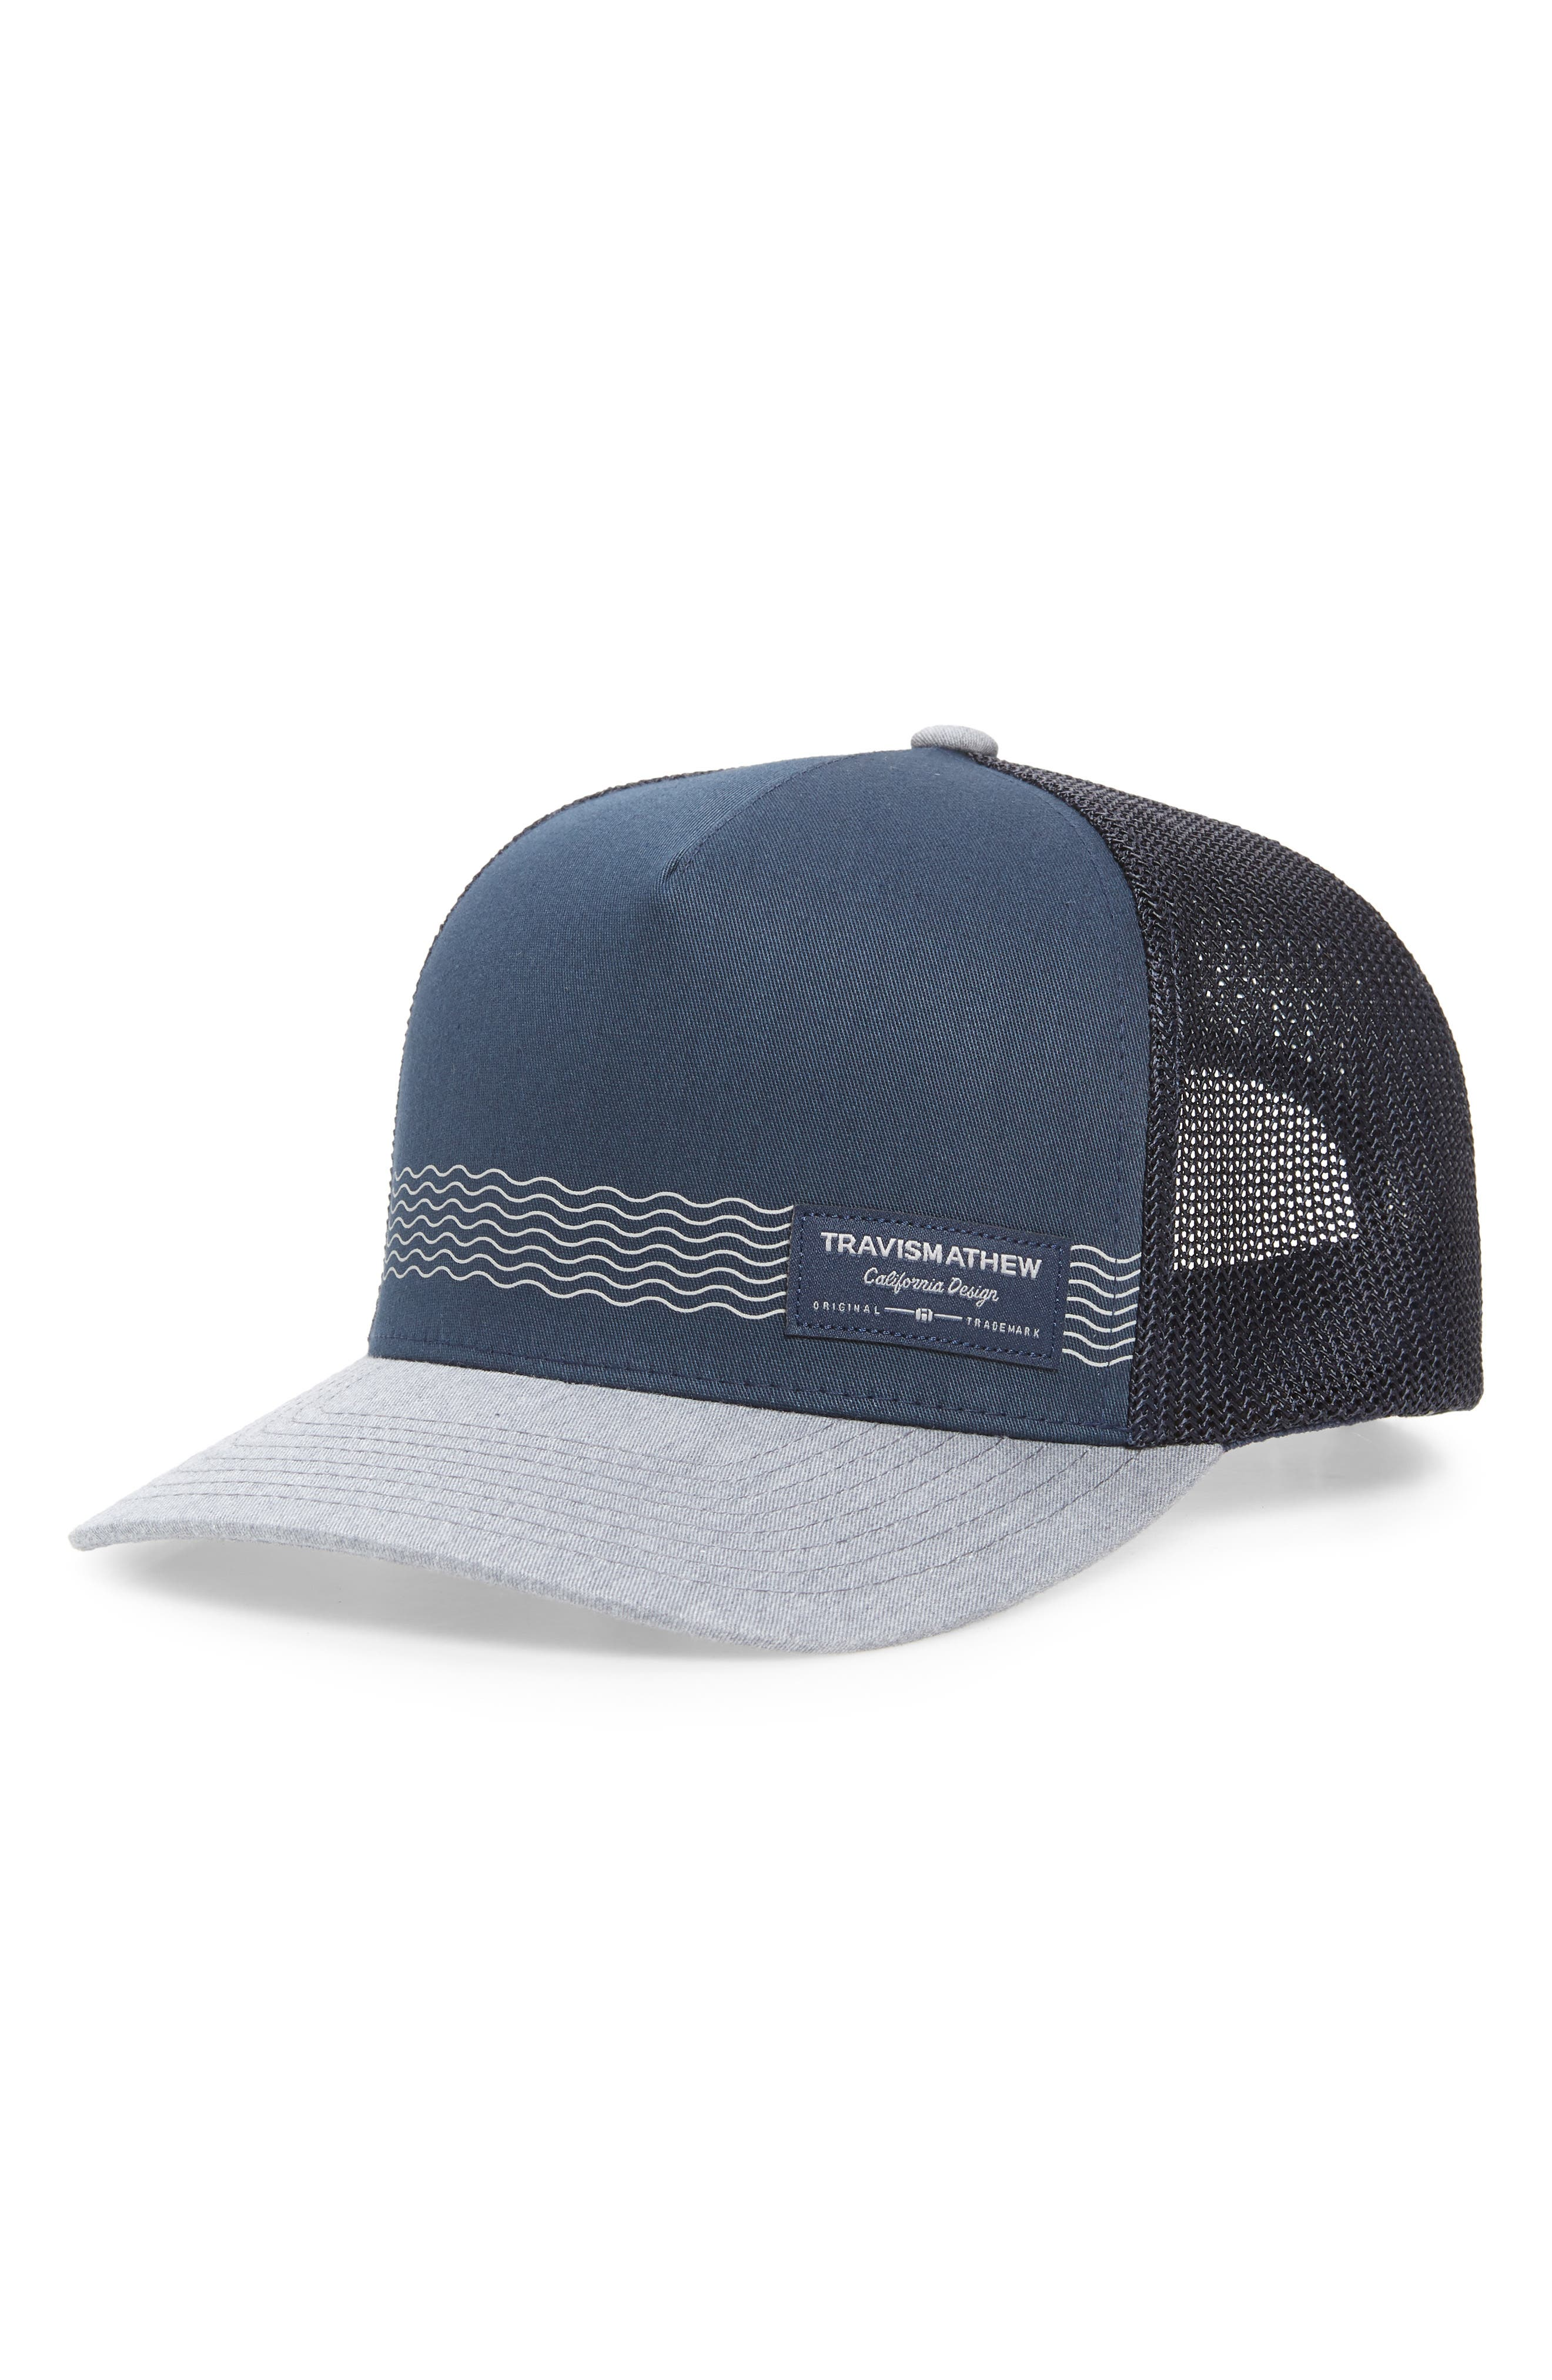 An easy, breezy vibe defines a hat with cool mesh panels for comfort. Style Name: Travismathew Culebra Trucker Hat. Style Number: 6127840. Available in stores.